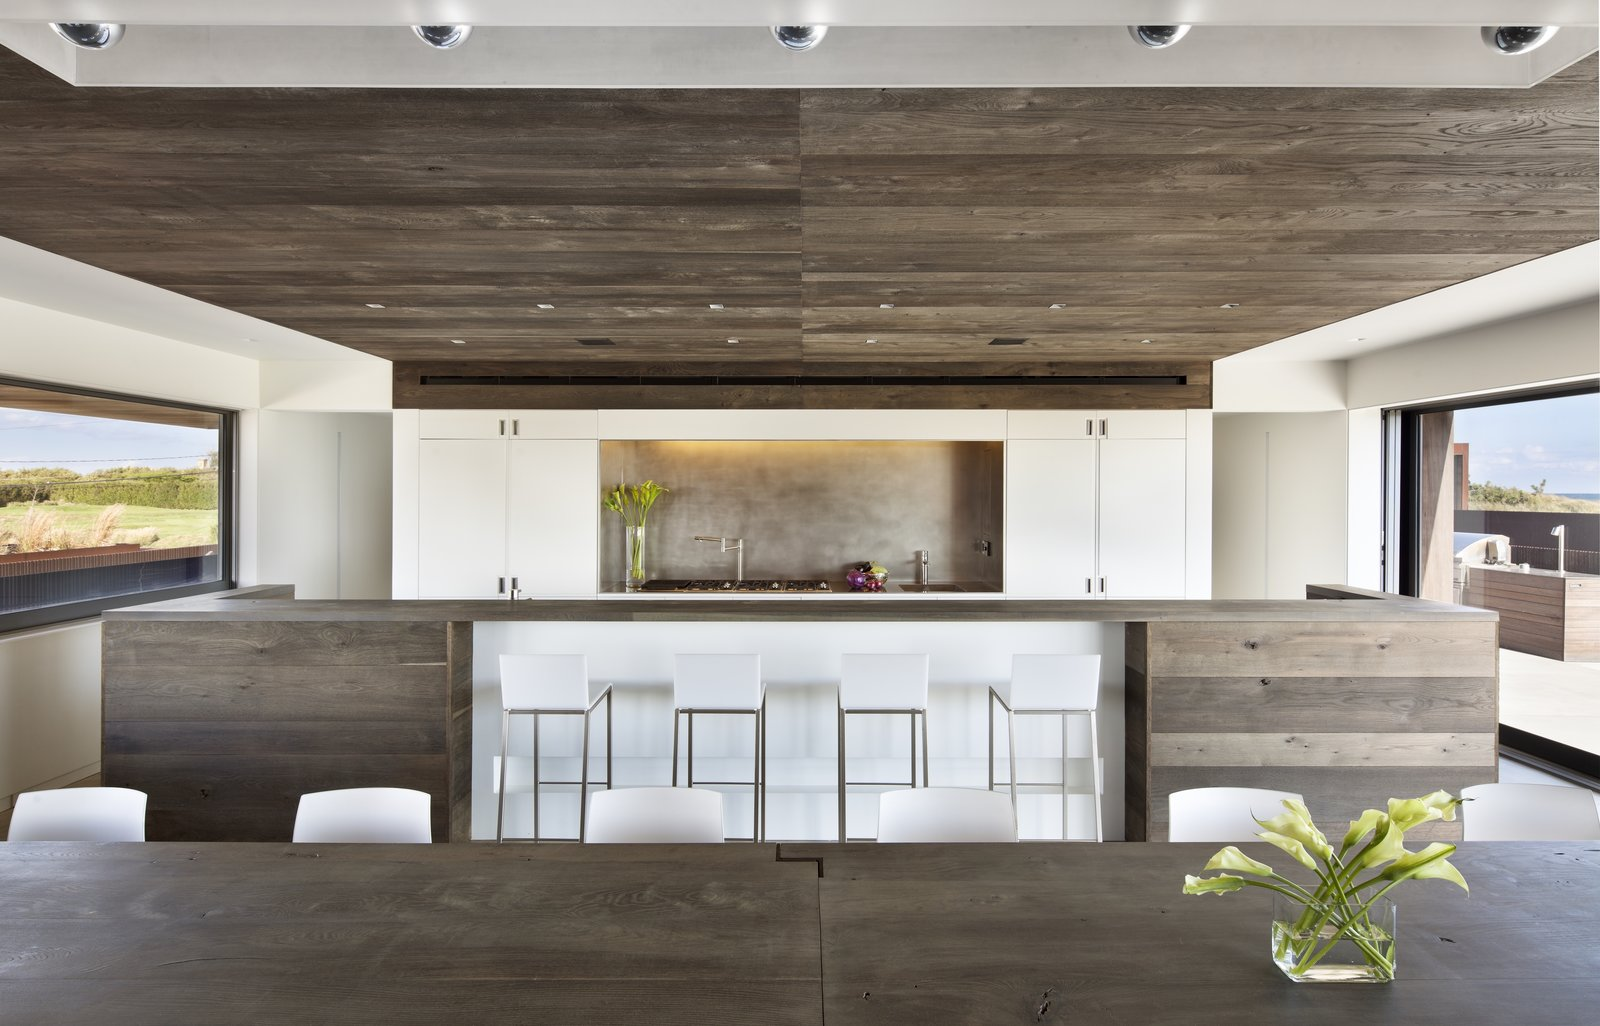 Dining Room, Bar, Table, Chair, Stools, Ceiling Lighting, and Ceramic Tile Floor  Sagaponack, NY